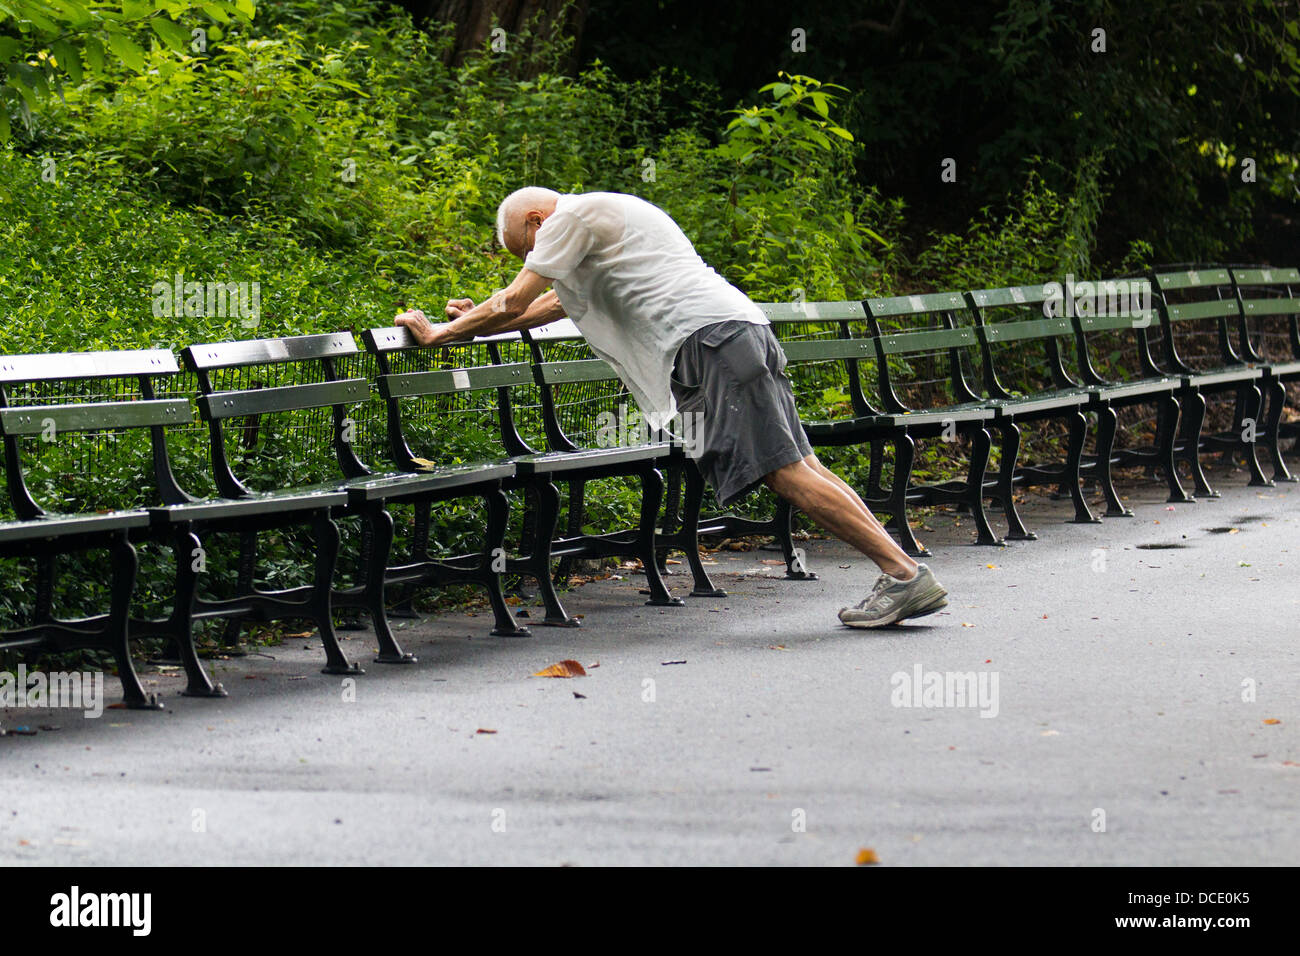 Senior Man stretching in Central Park Stock Photo